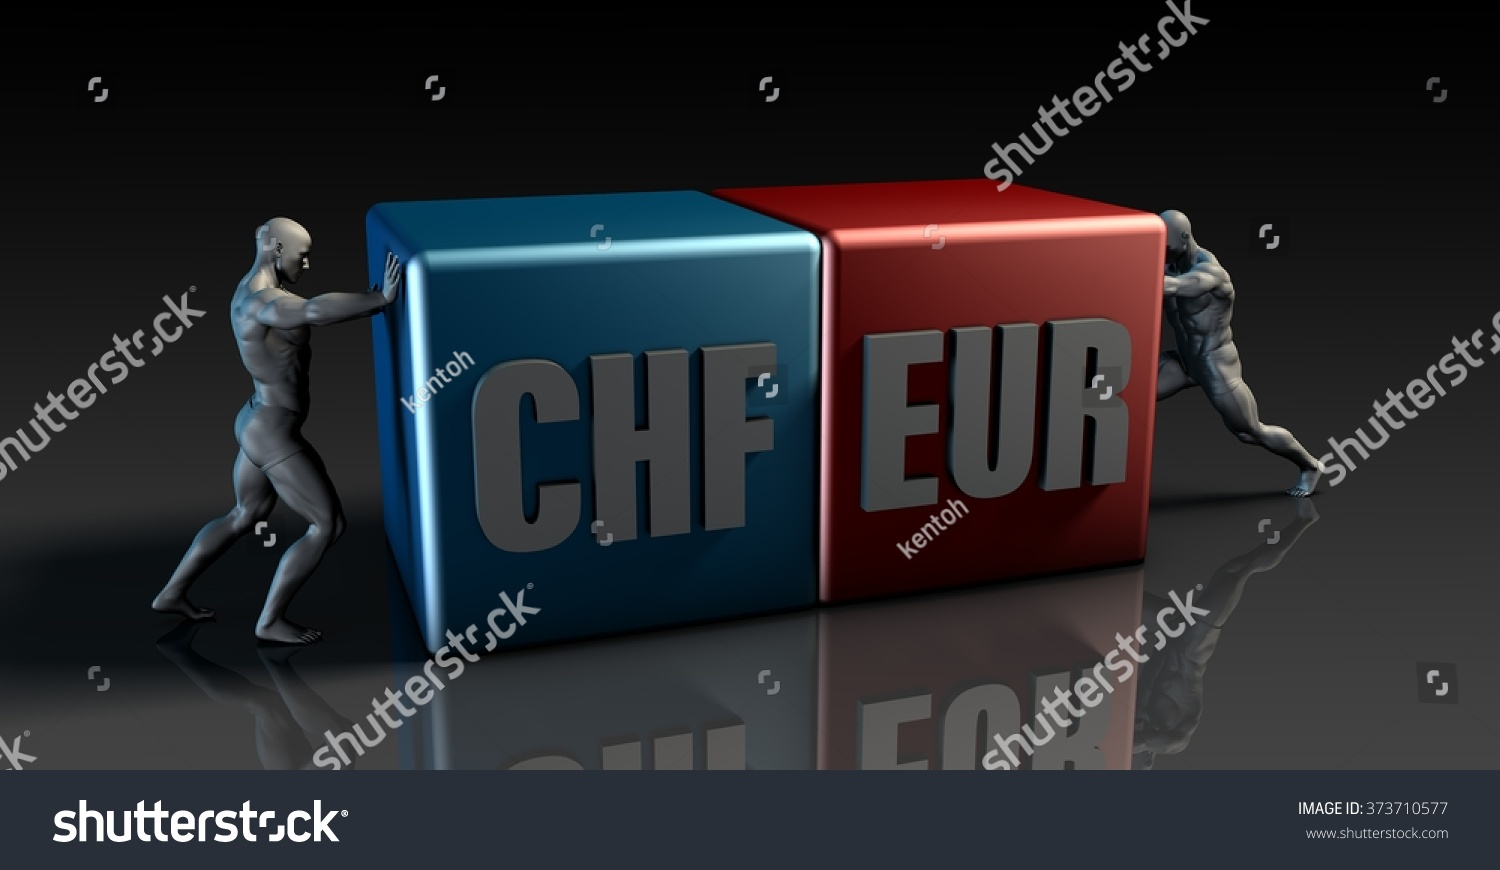 Currency chf symbol choice image symbols and meanings chf eur currency pair swiss franc stock illustration 373710577 chf eur currency pair or swiss franc buycottarizona Images